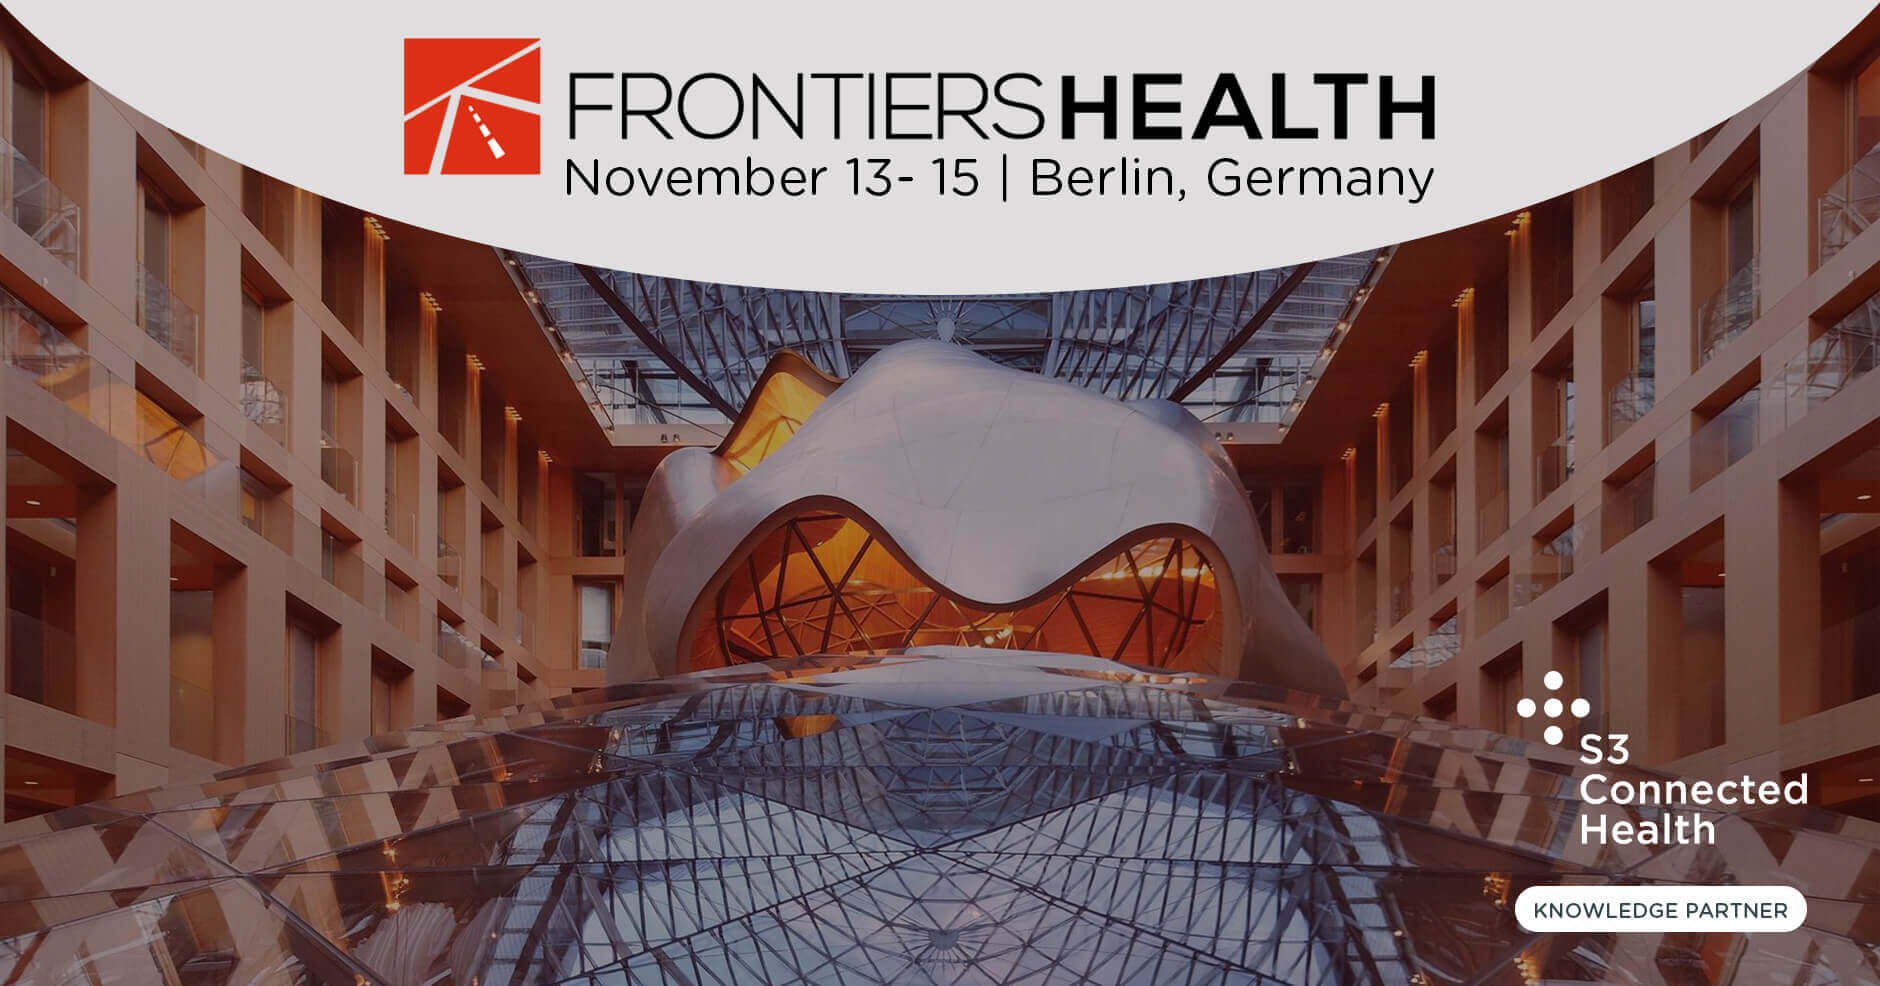 Top Tips for Frontiers Health Berlin 2019